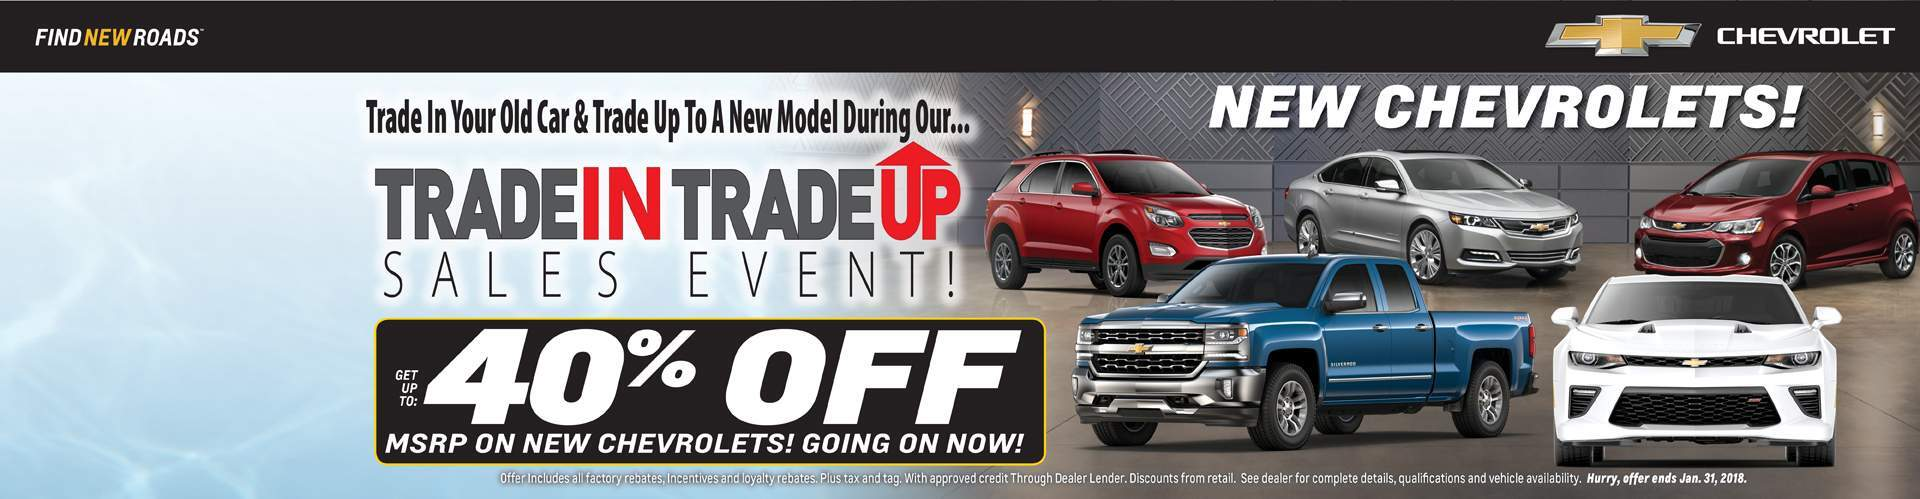 New Chevrolets Get Up To 40% Off MSRP!